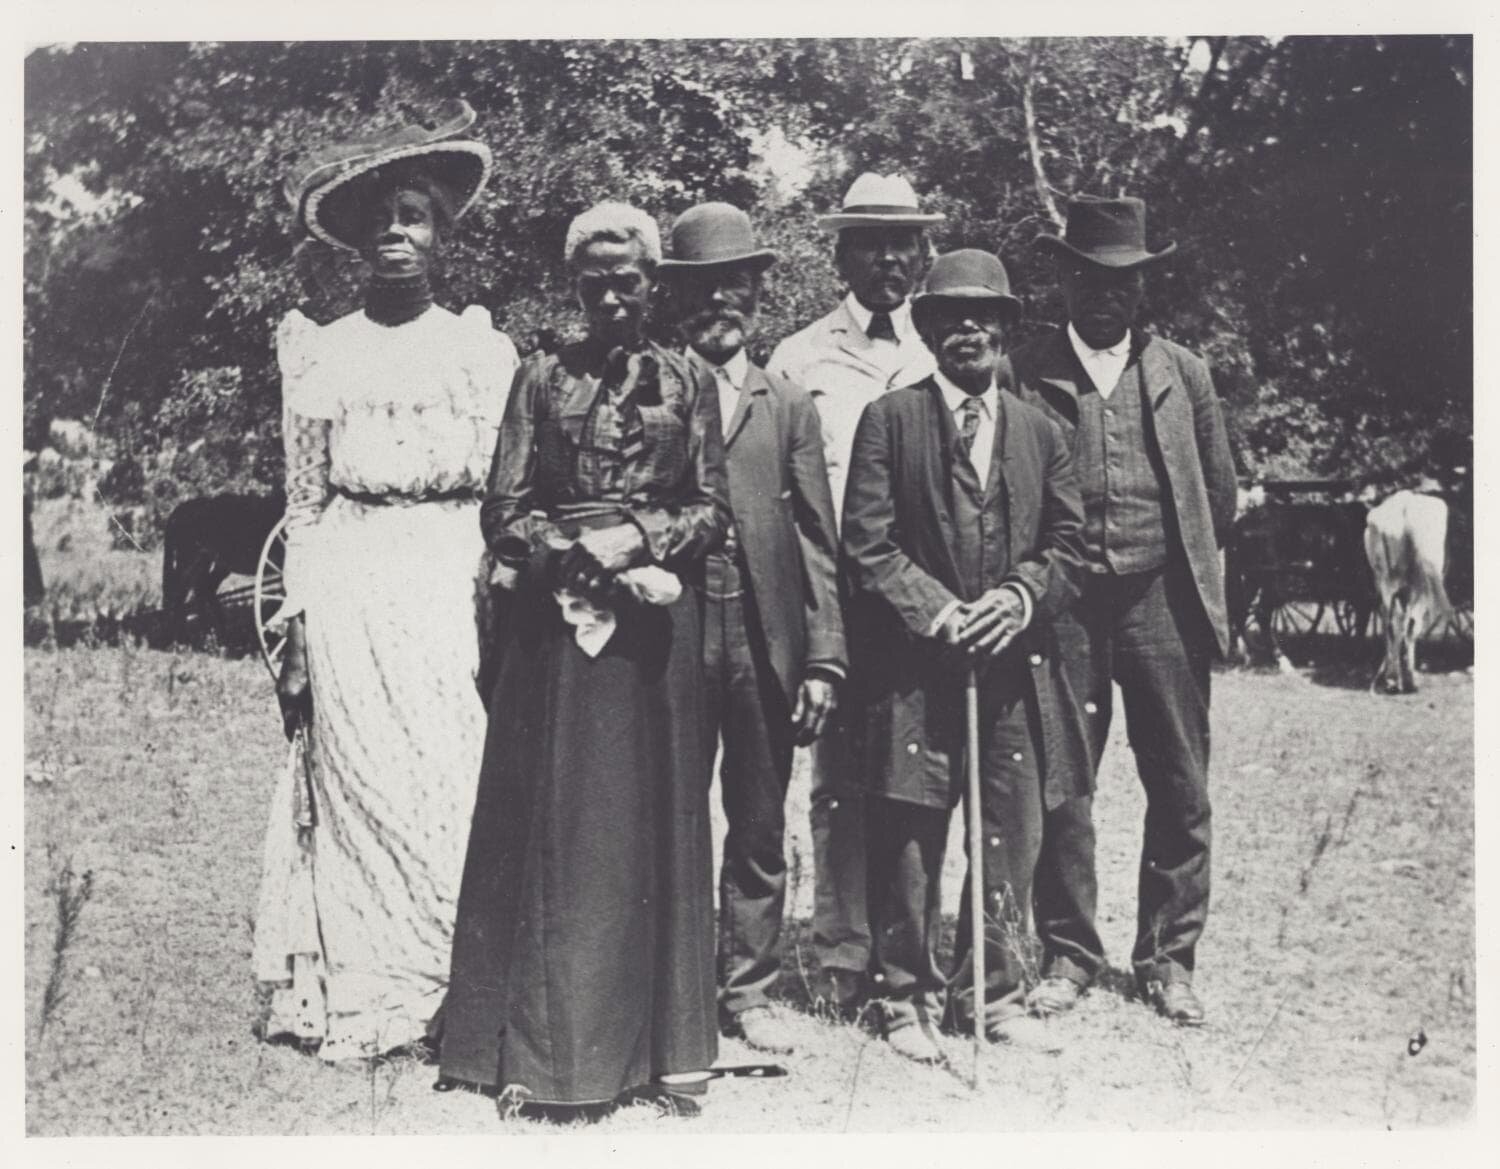 An early celebration of Emancipation Day (Juneteenth) in 1900.